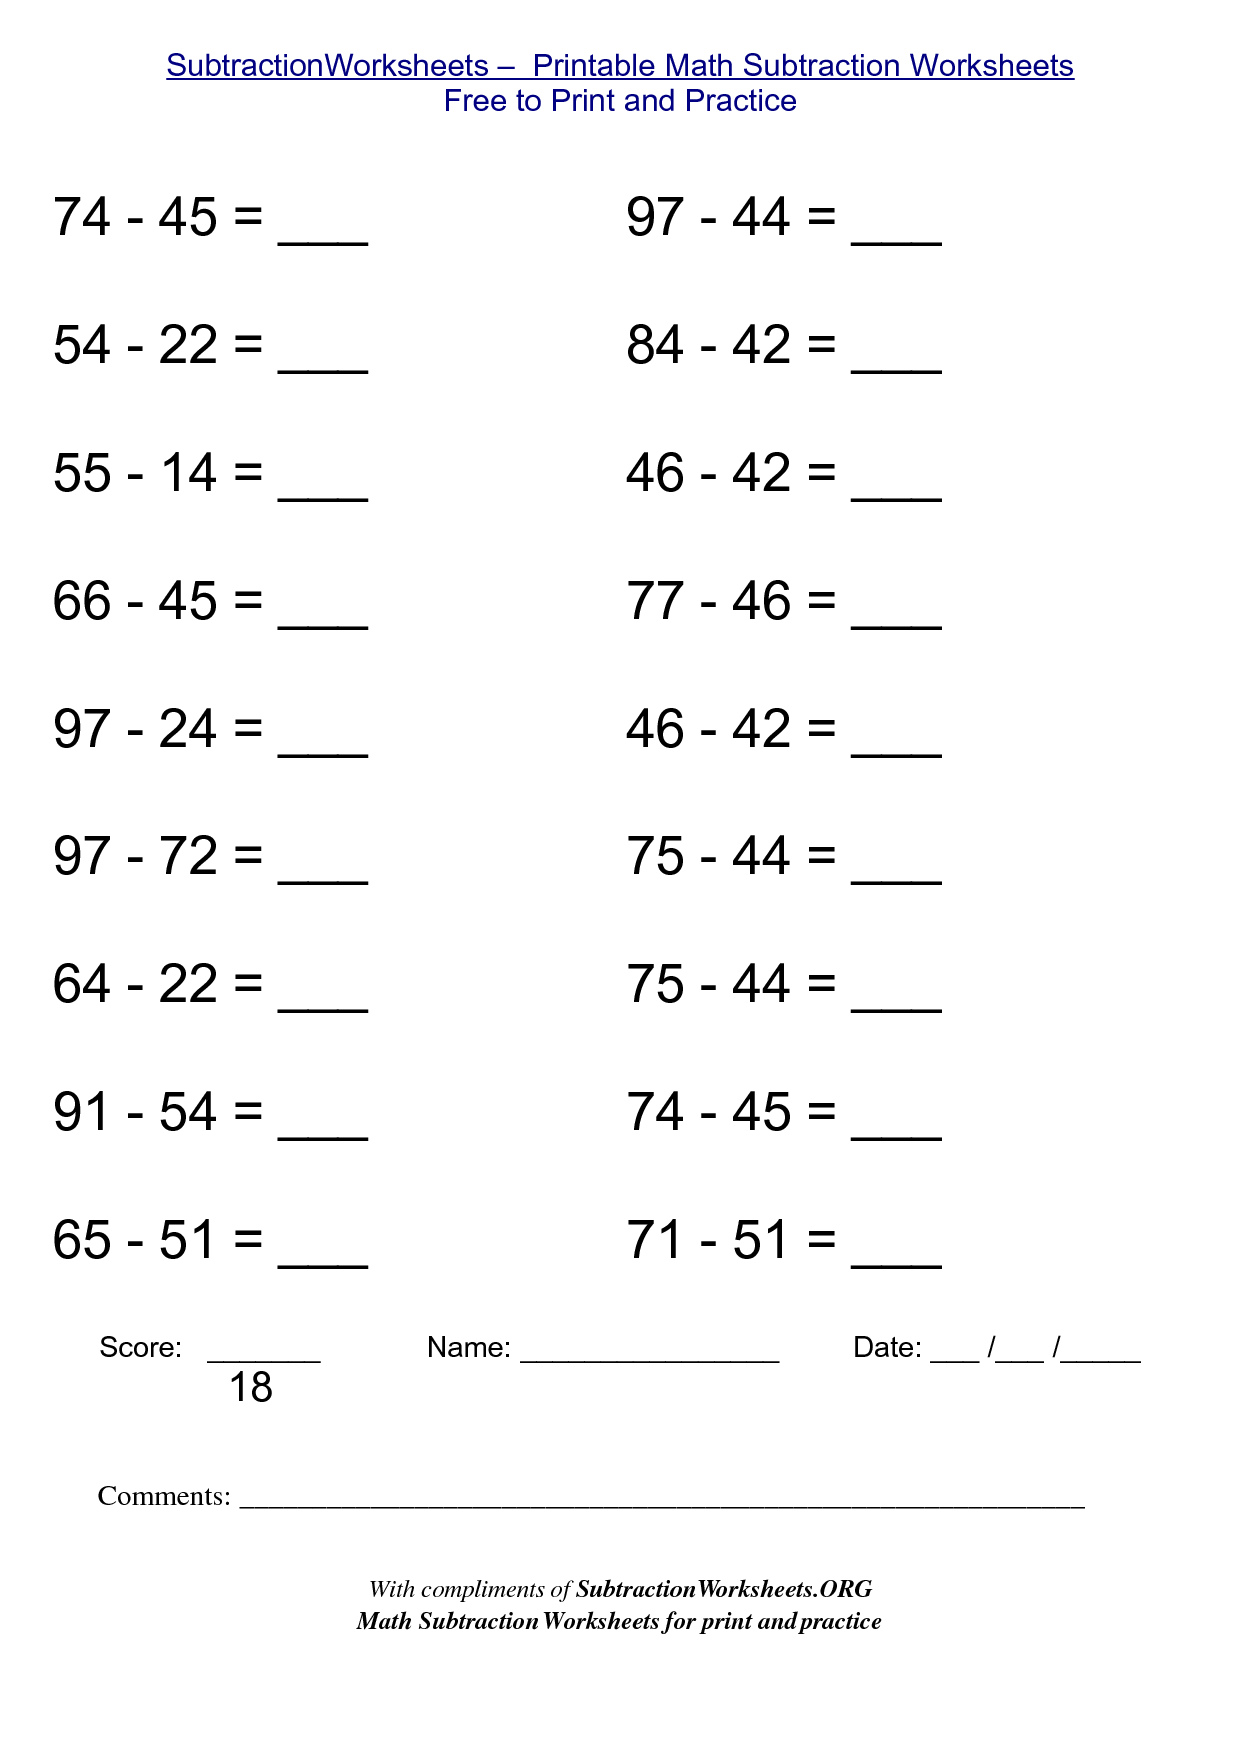 5 Best Images of Free Printable Math Sheets Subtraction – Best Math Worksheets